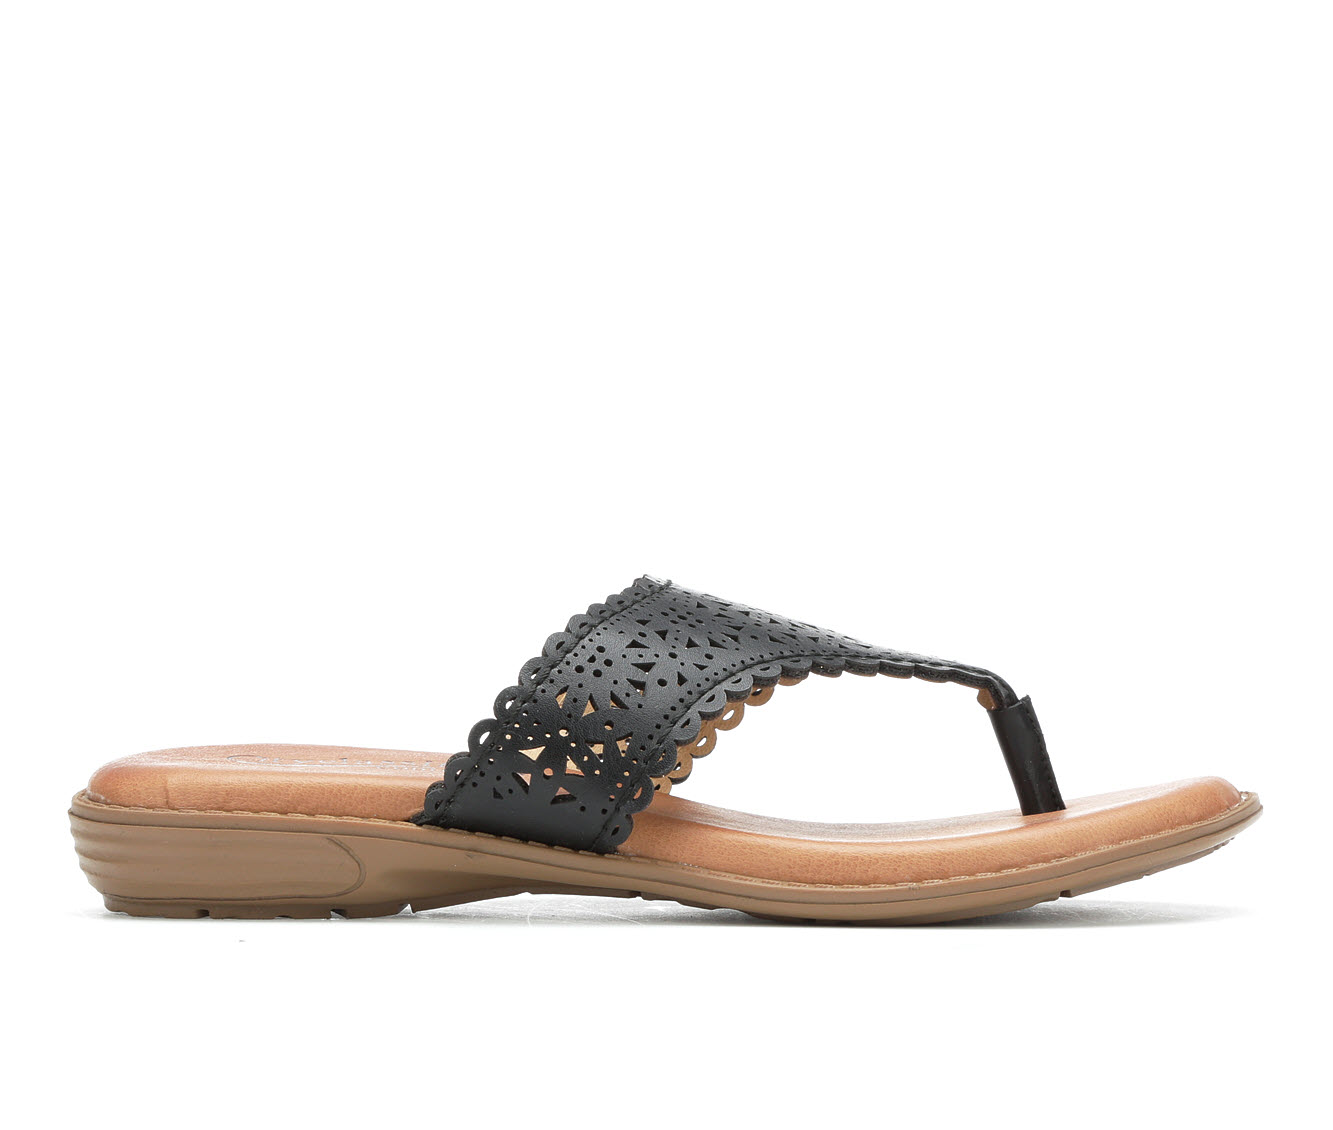 City Classified Quirk Women's Sandal (Black Faux Leather)